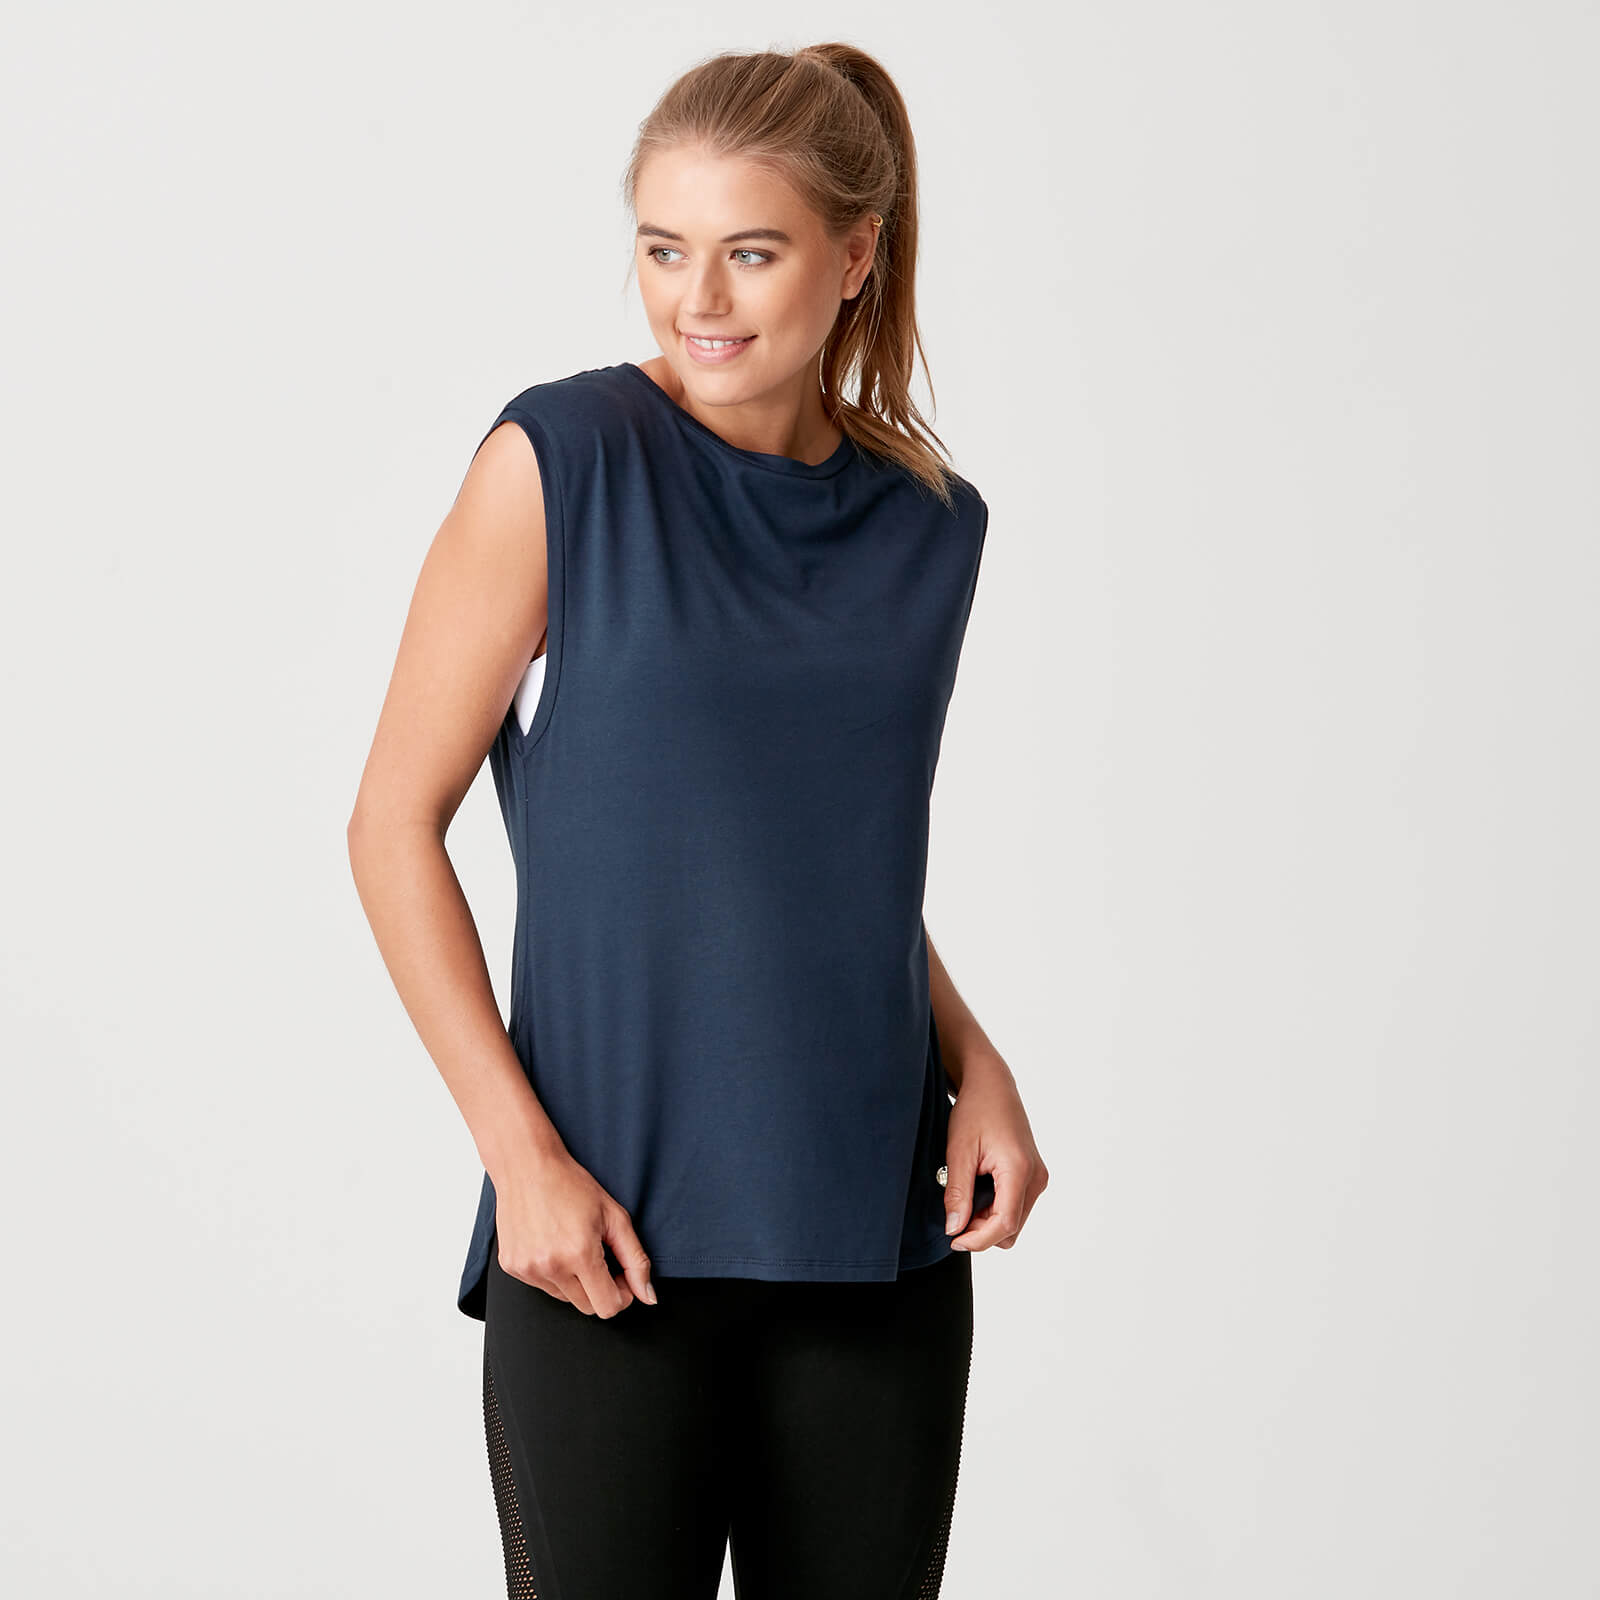 Luxe Touch Vest - Navy - XS